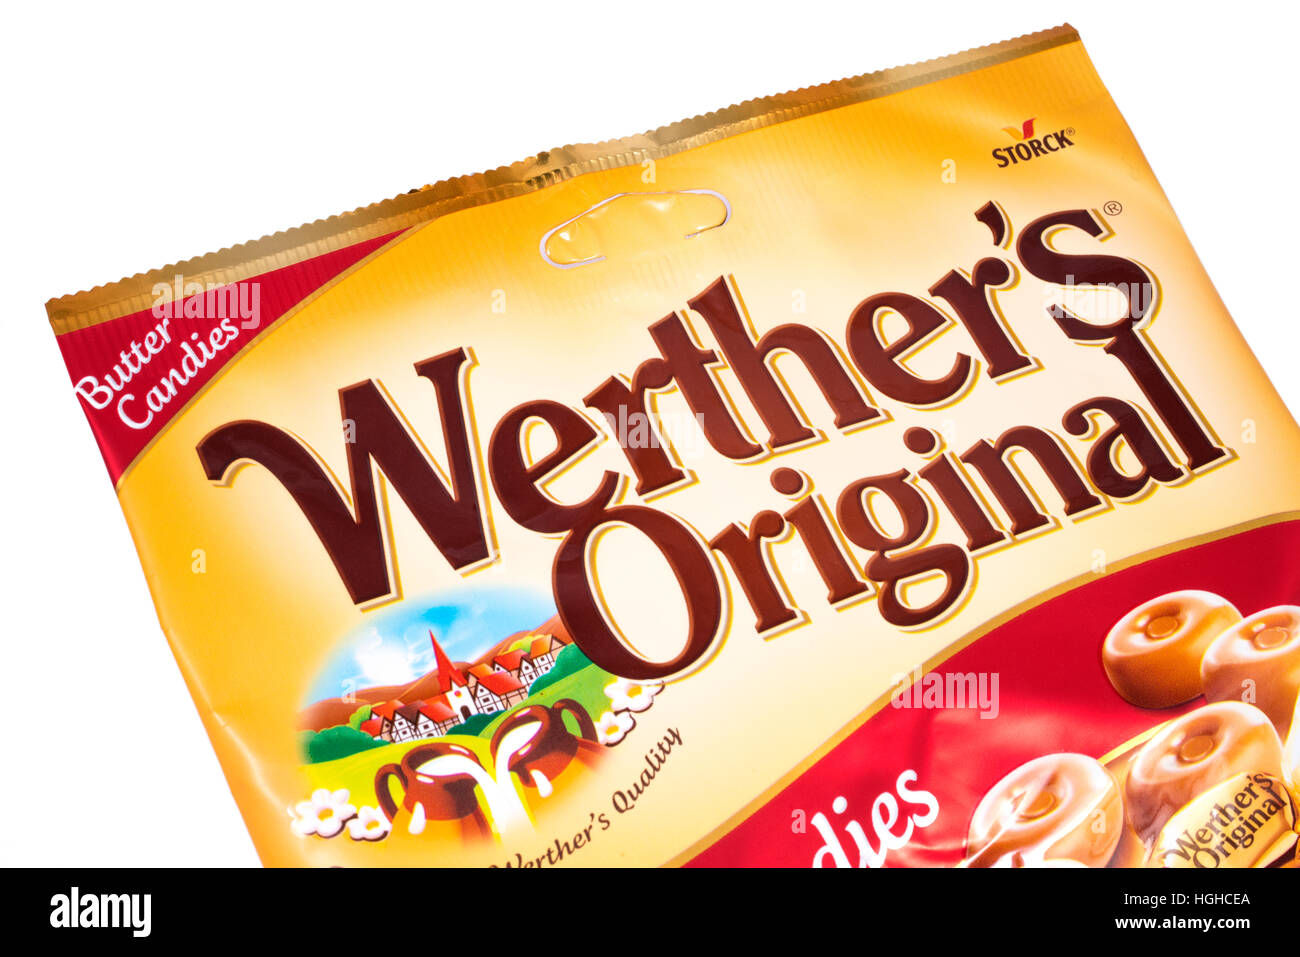 werthers original stock photos werthers original stock images alamy